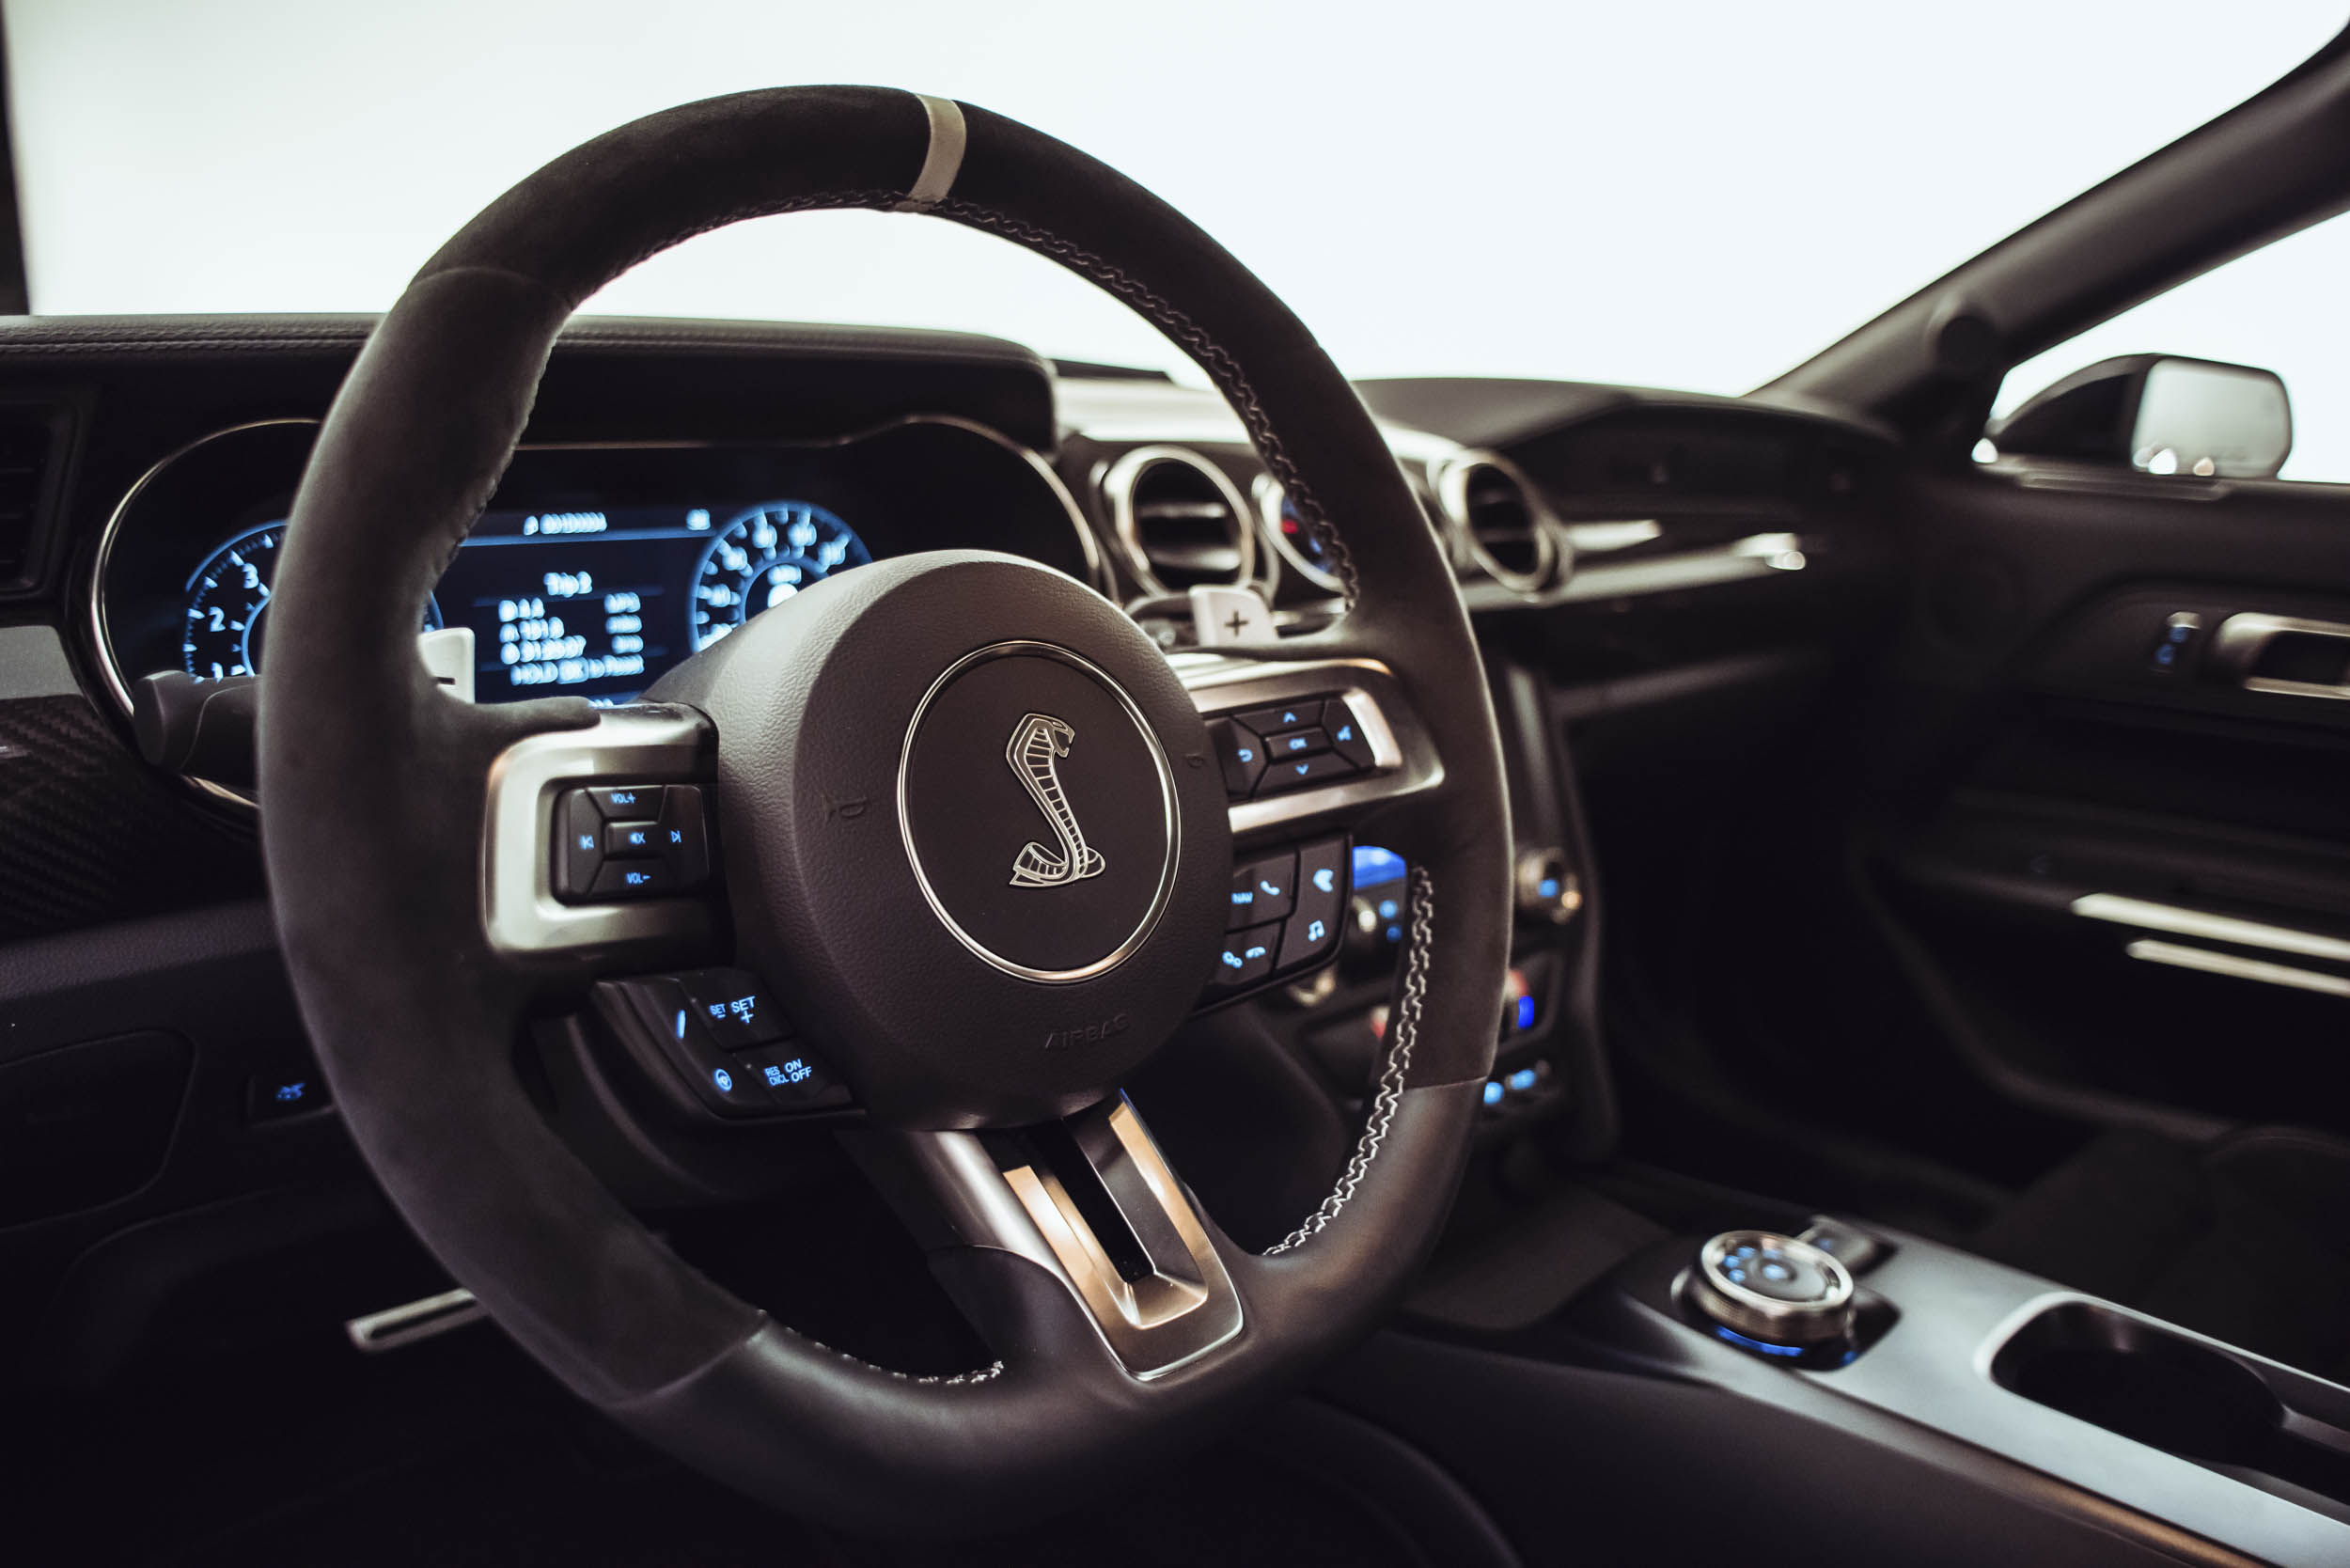 2020 Shelby GT500 steering wheel